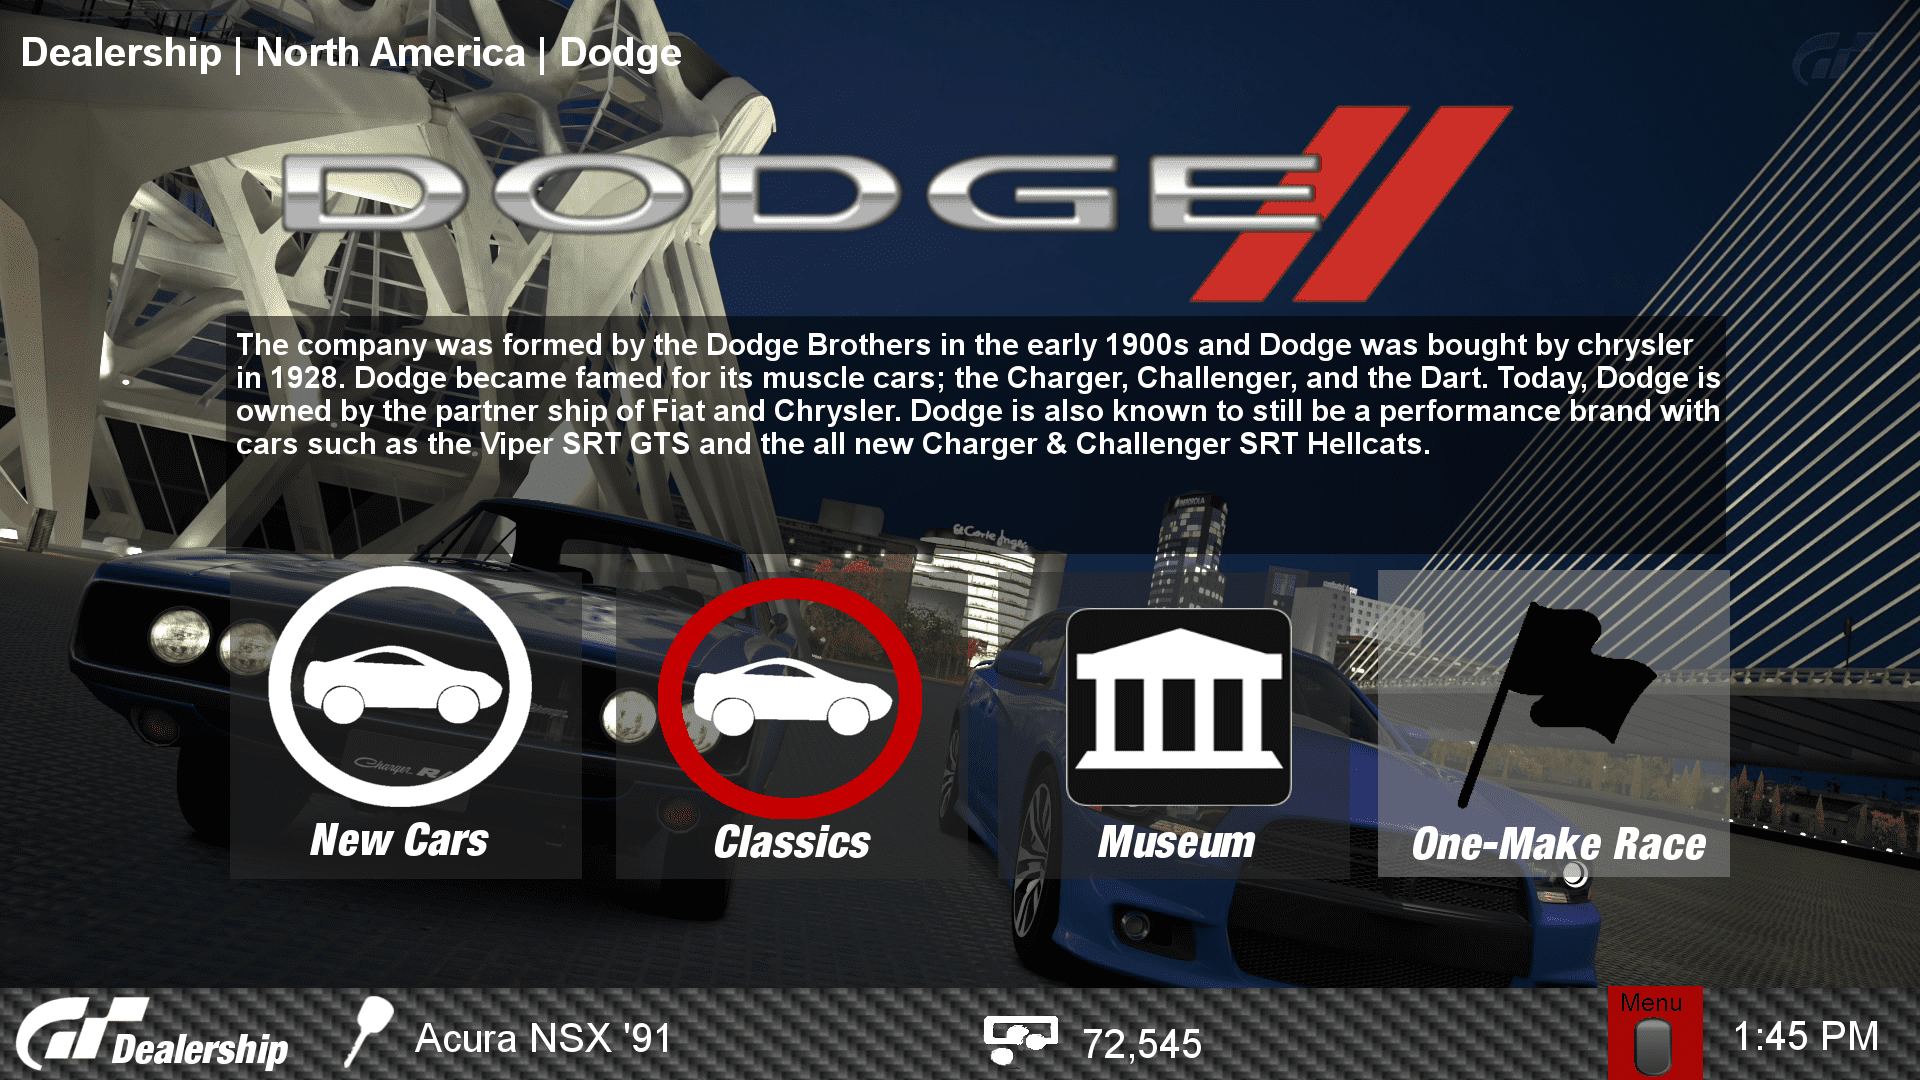 Dodge Dealership Classic.png